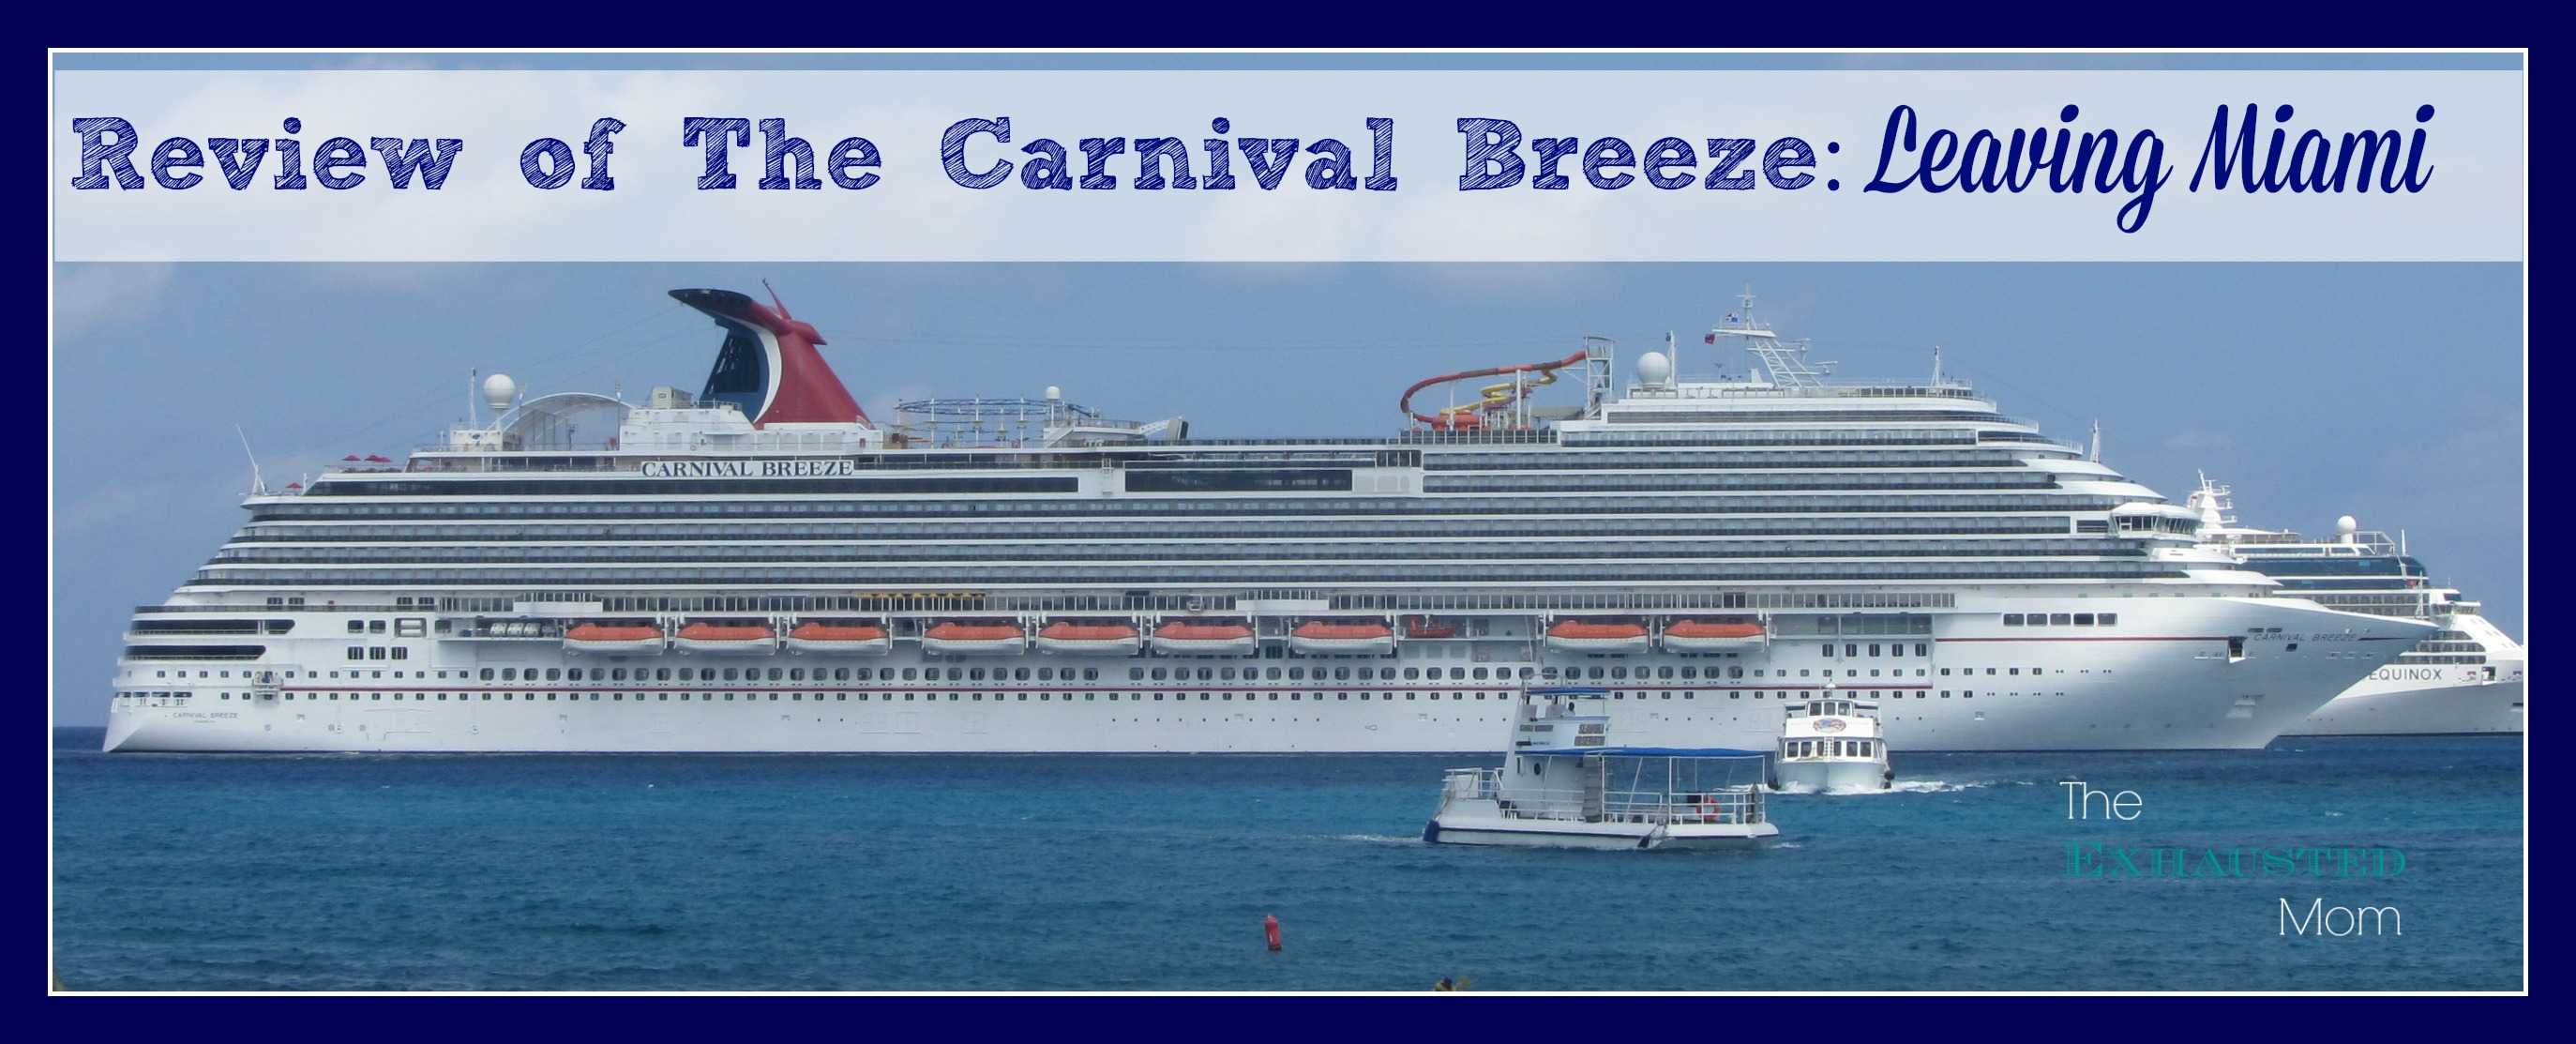 Review of The Carnival Breeze: Leaving Miami